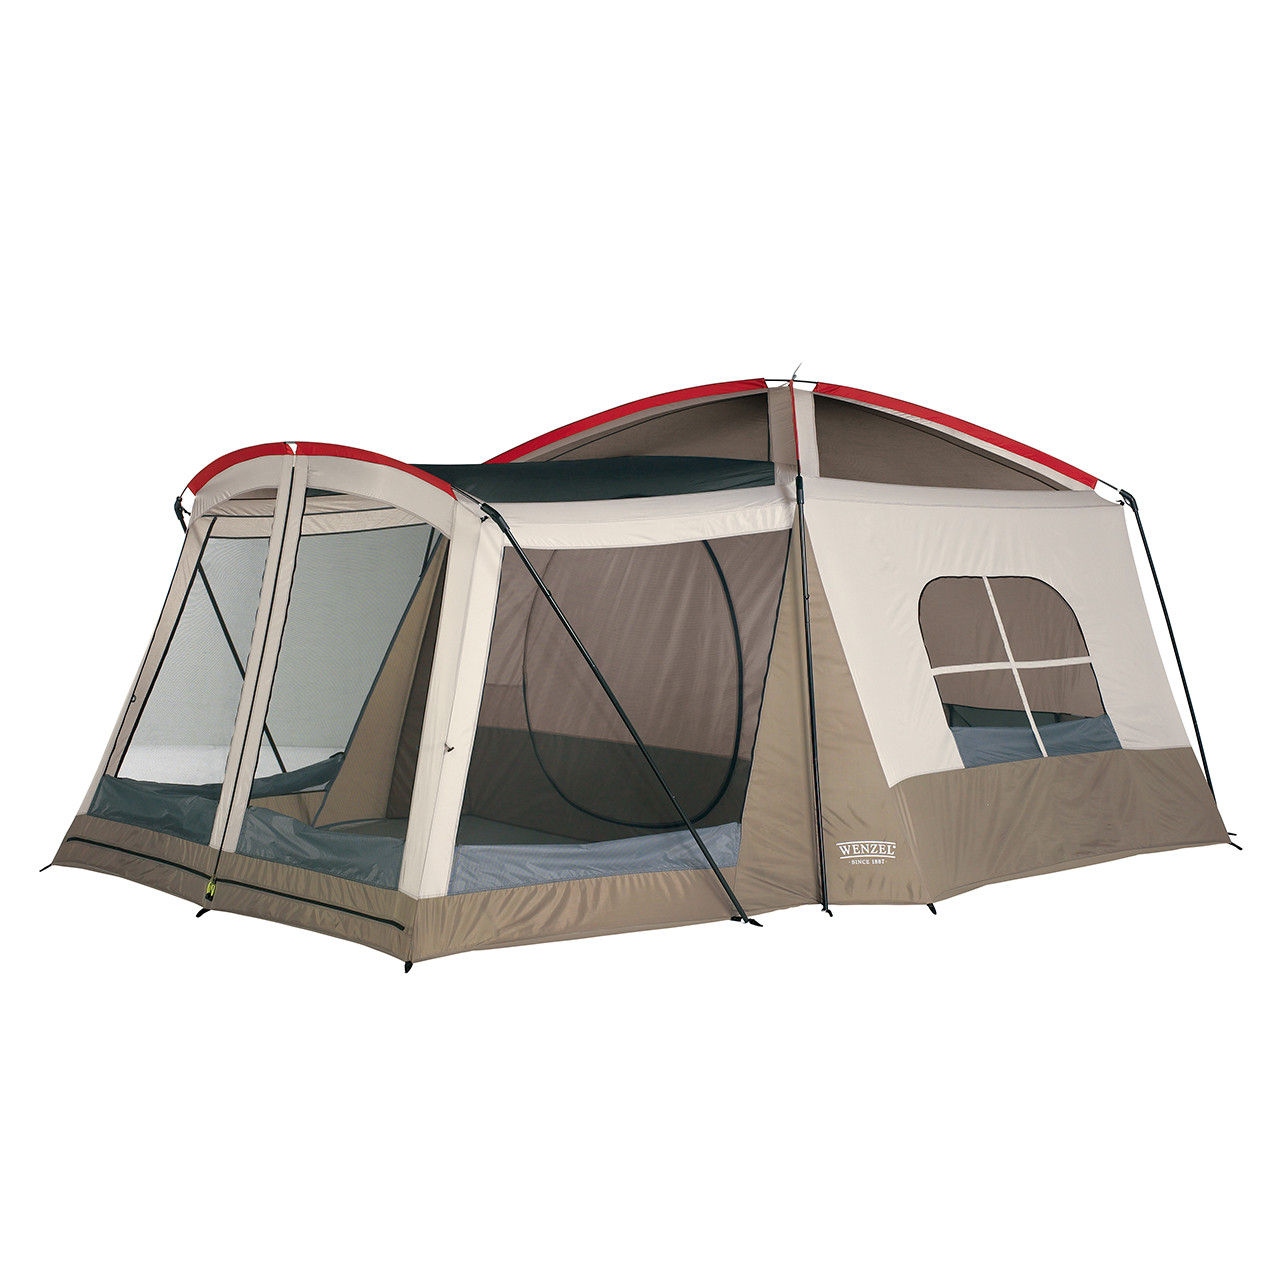 Wenzel Klondike 8 tent, green and tan, setup without the rain fly on and the vestibule screen windows open and the main tent screen window open